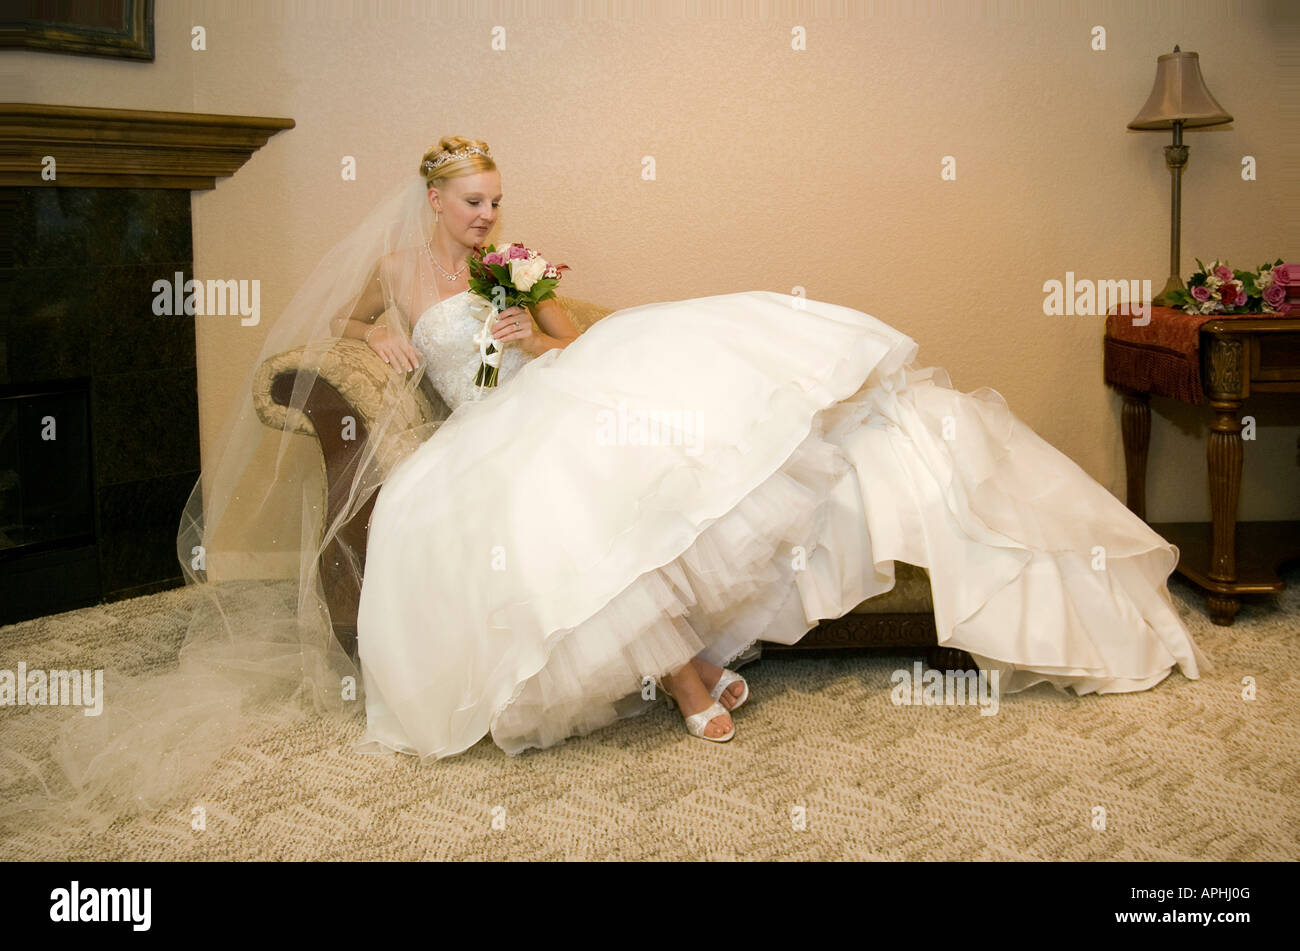 bride lounging or waiting before the wedding in chaise sofa couch full body portrait 'getting ready shots' - Stock Image